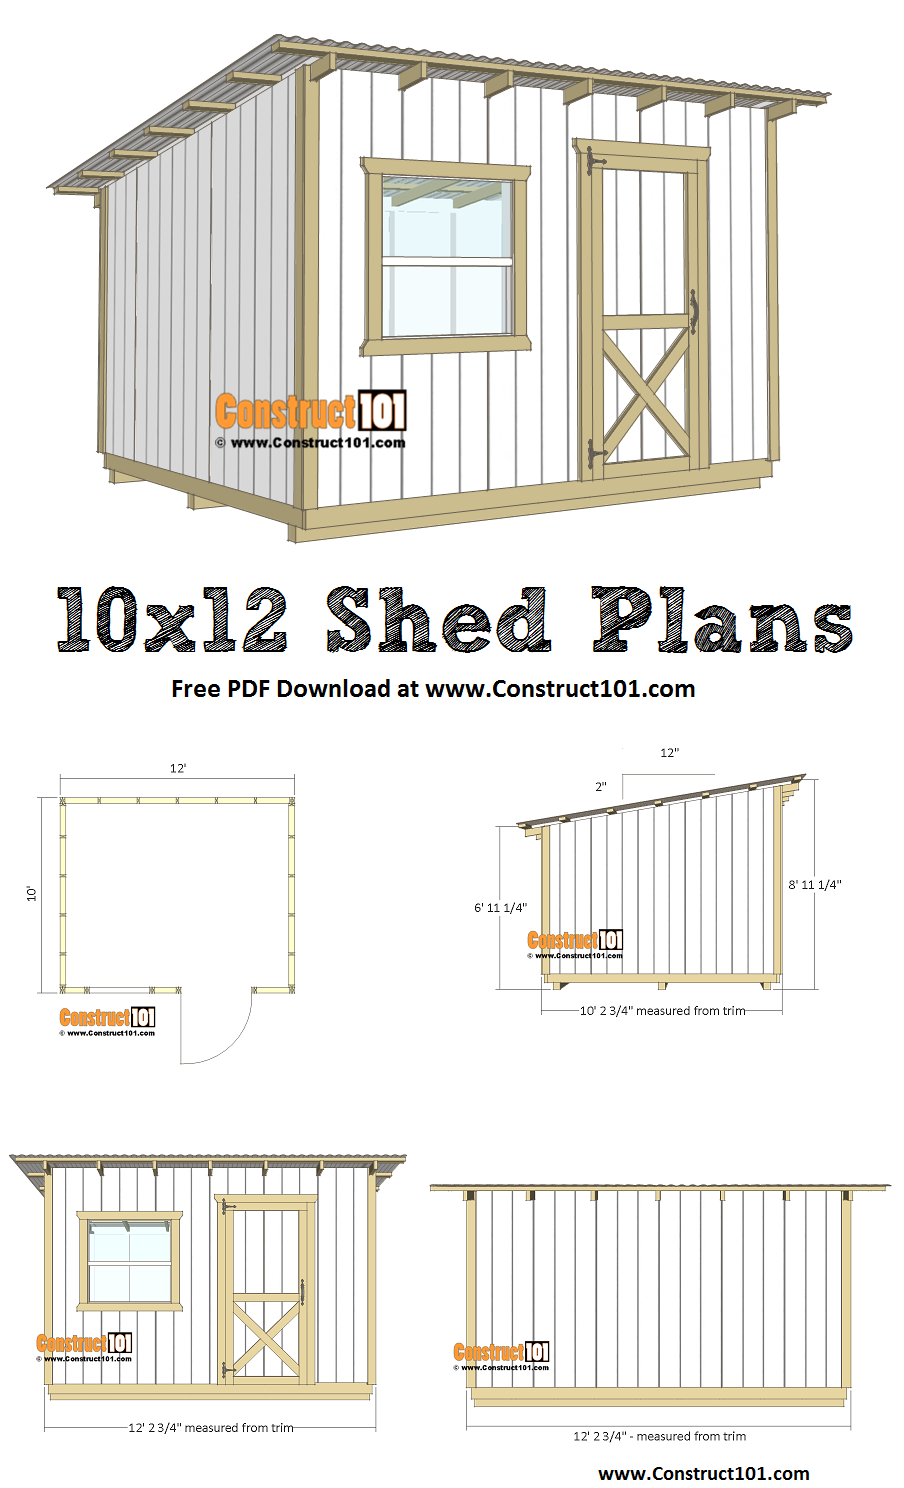 10x12 Lean To Shed Plans Pdf Download Construct101 Lean To Shed Diy Storage Shed Lean To Shed Plans